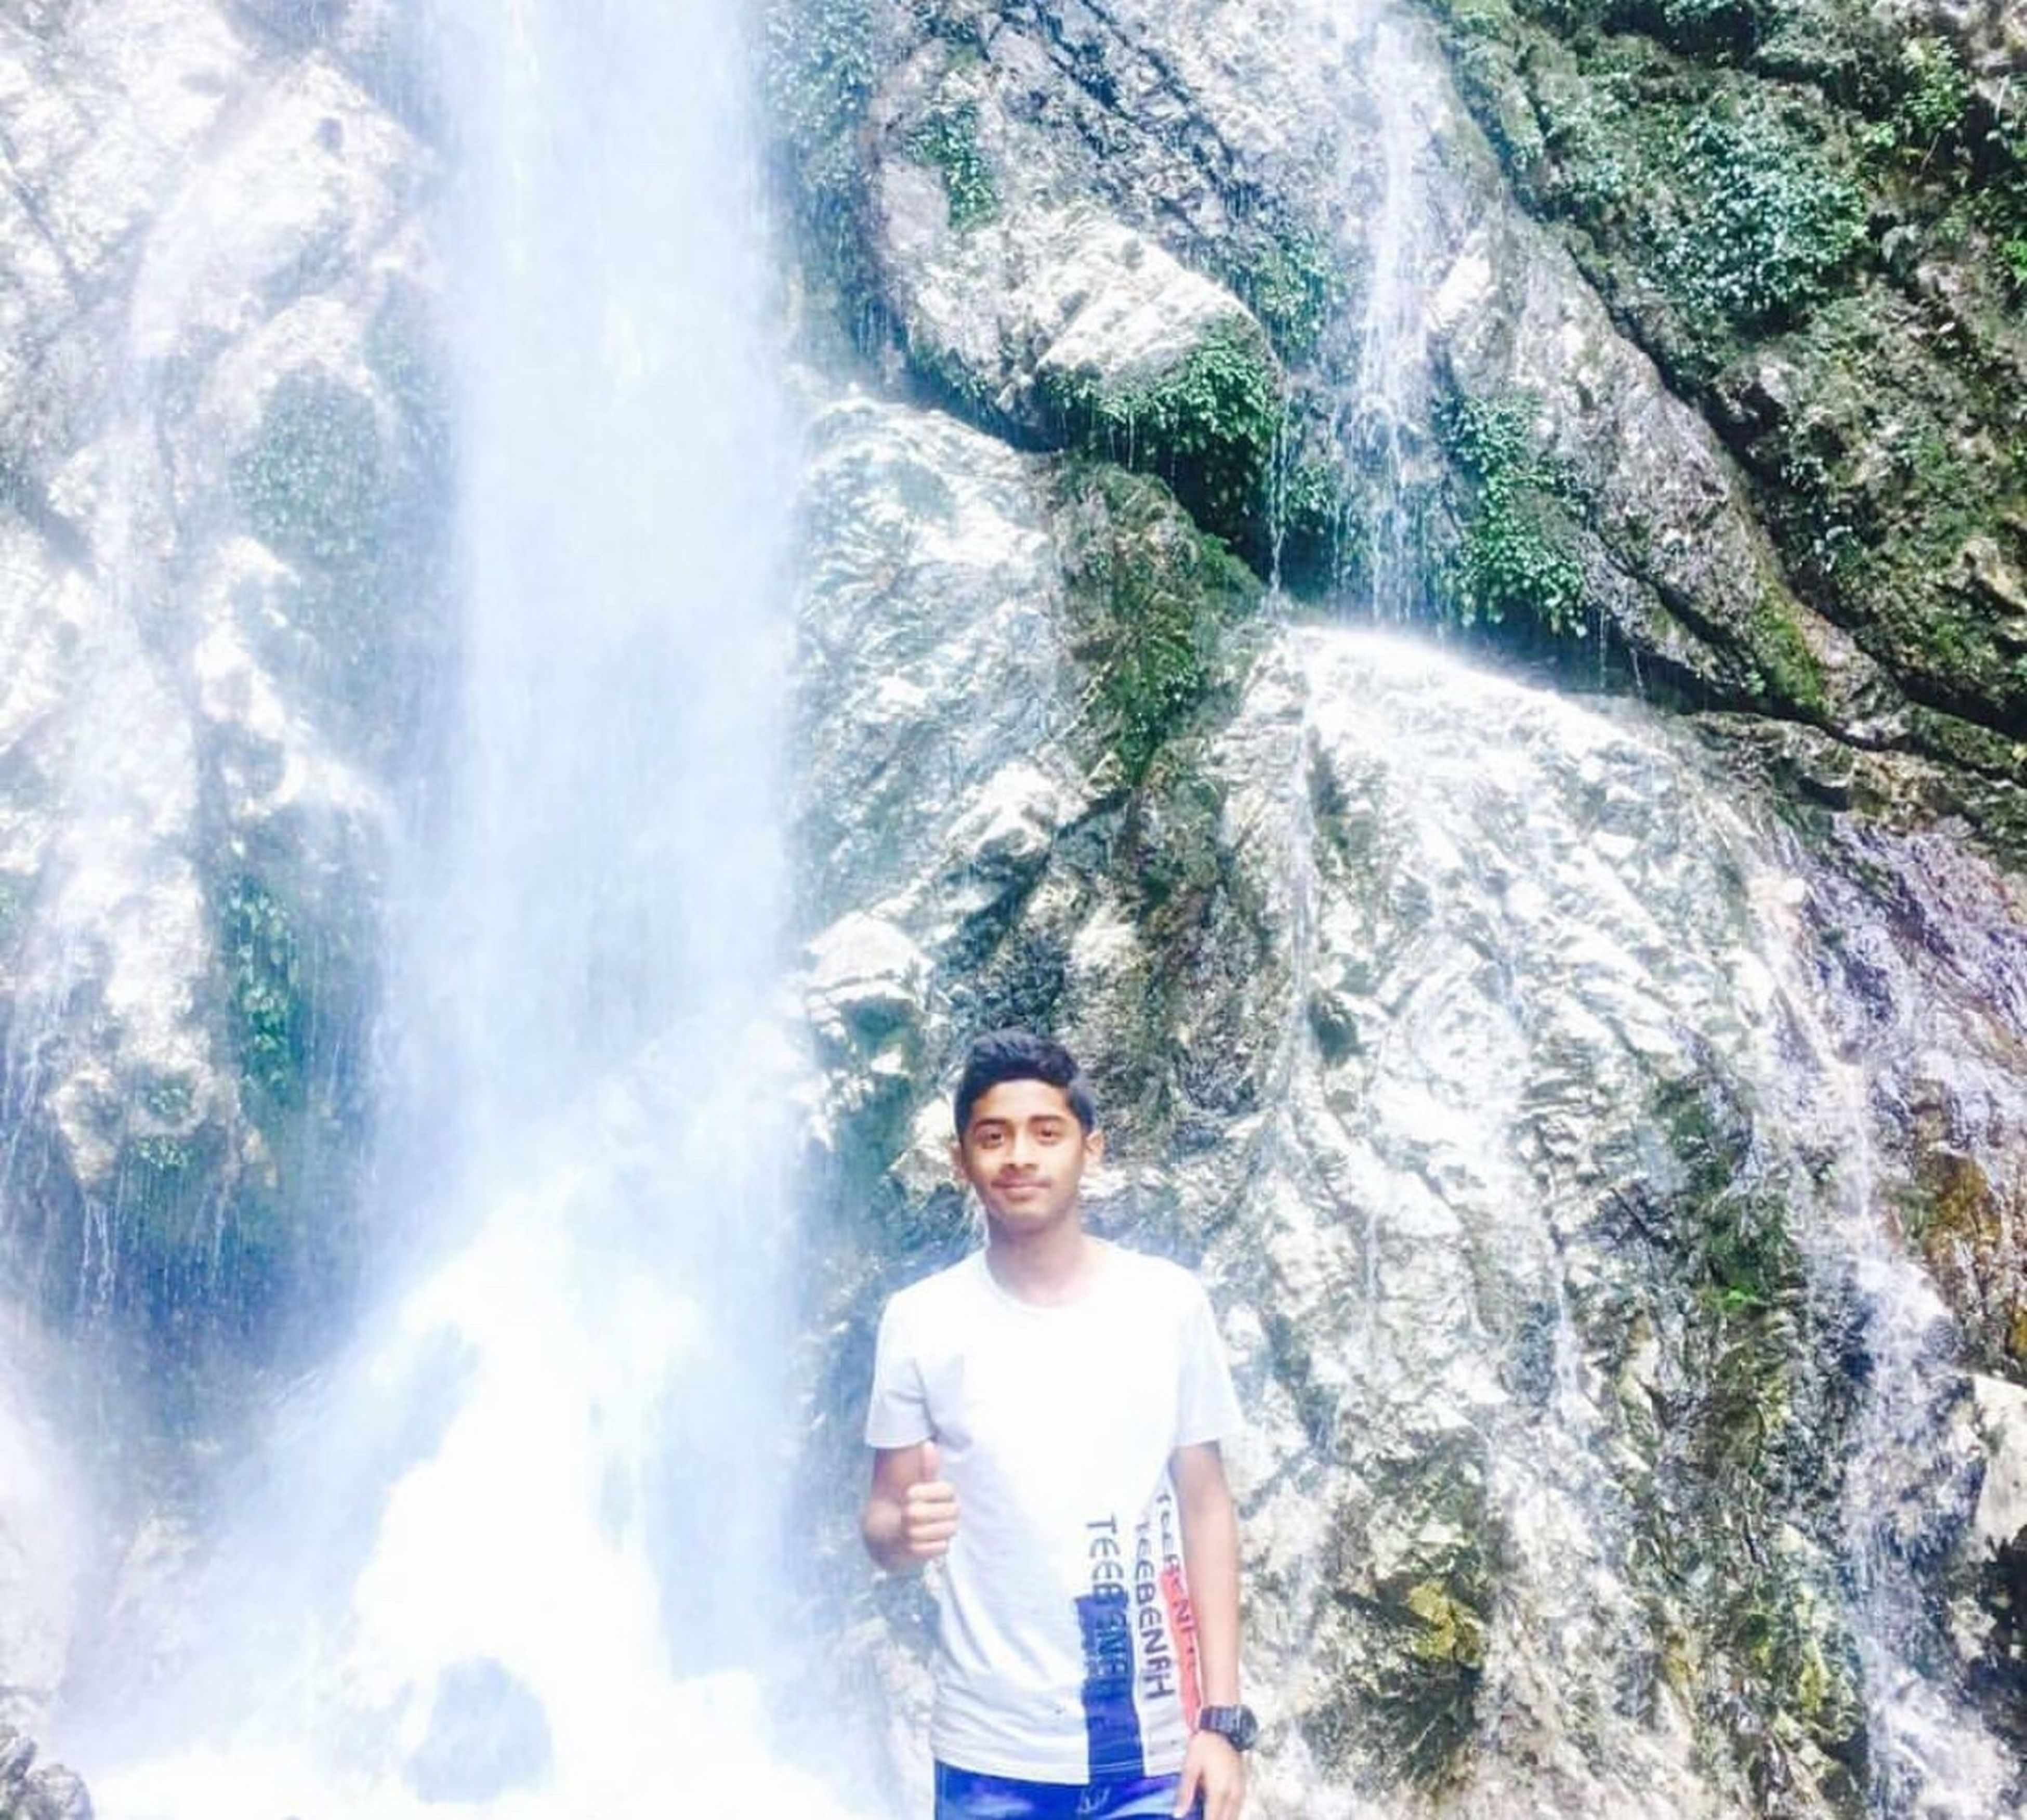 waterfall, one person, adults only, day, smiling, water, one man only, looking at camera, outdoors, people, portrait, motion, happiness, holding, nature, standing, only men, adult, young adult